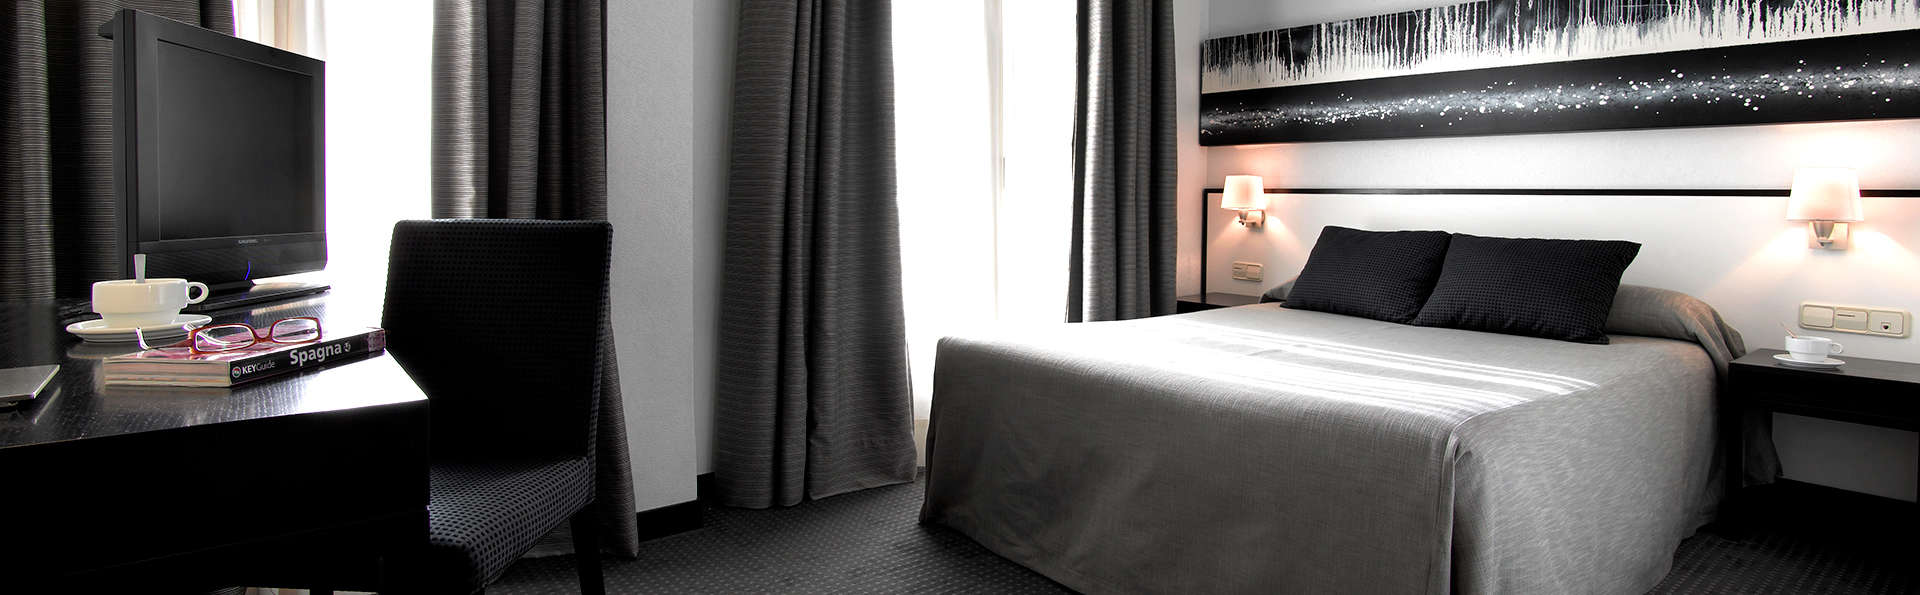 Hotel Maciá Plaza - Edit_Room.jpg